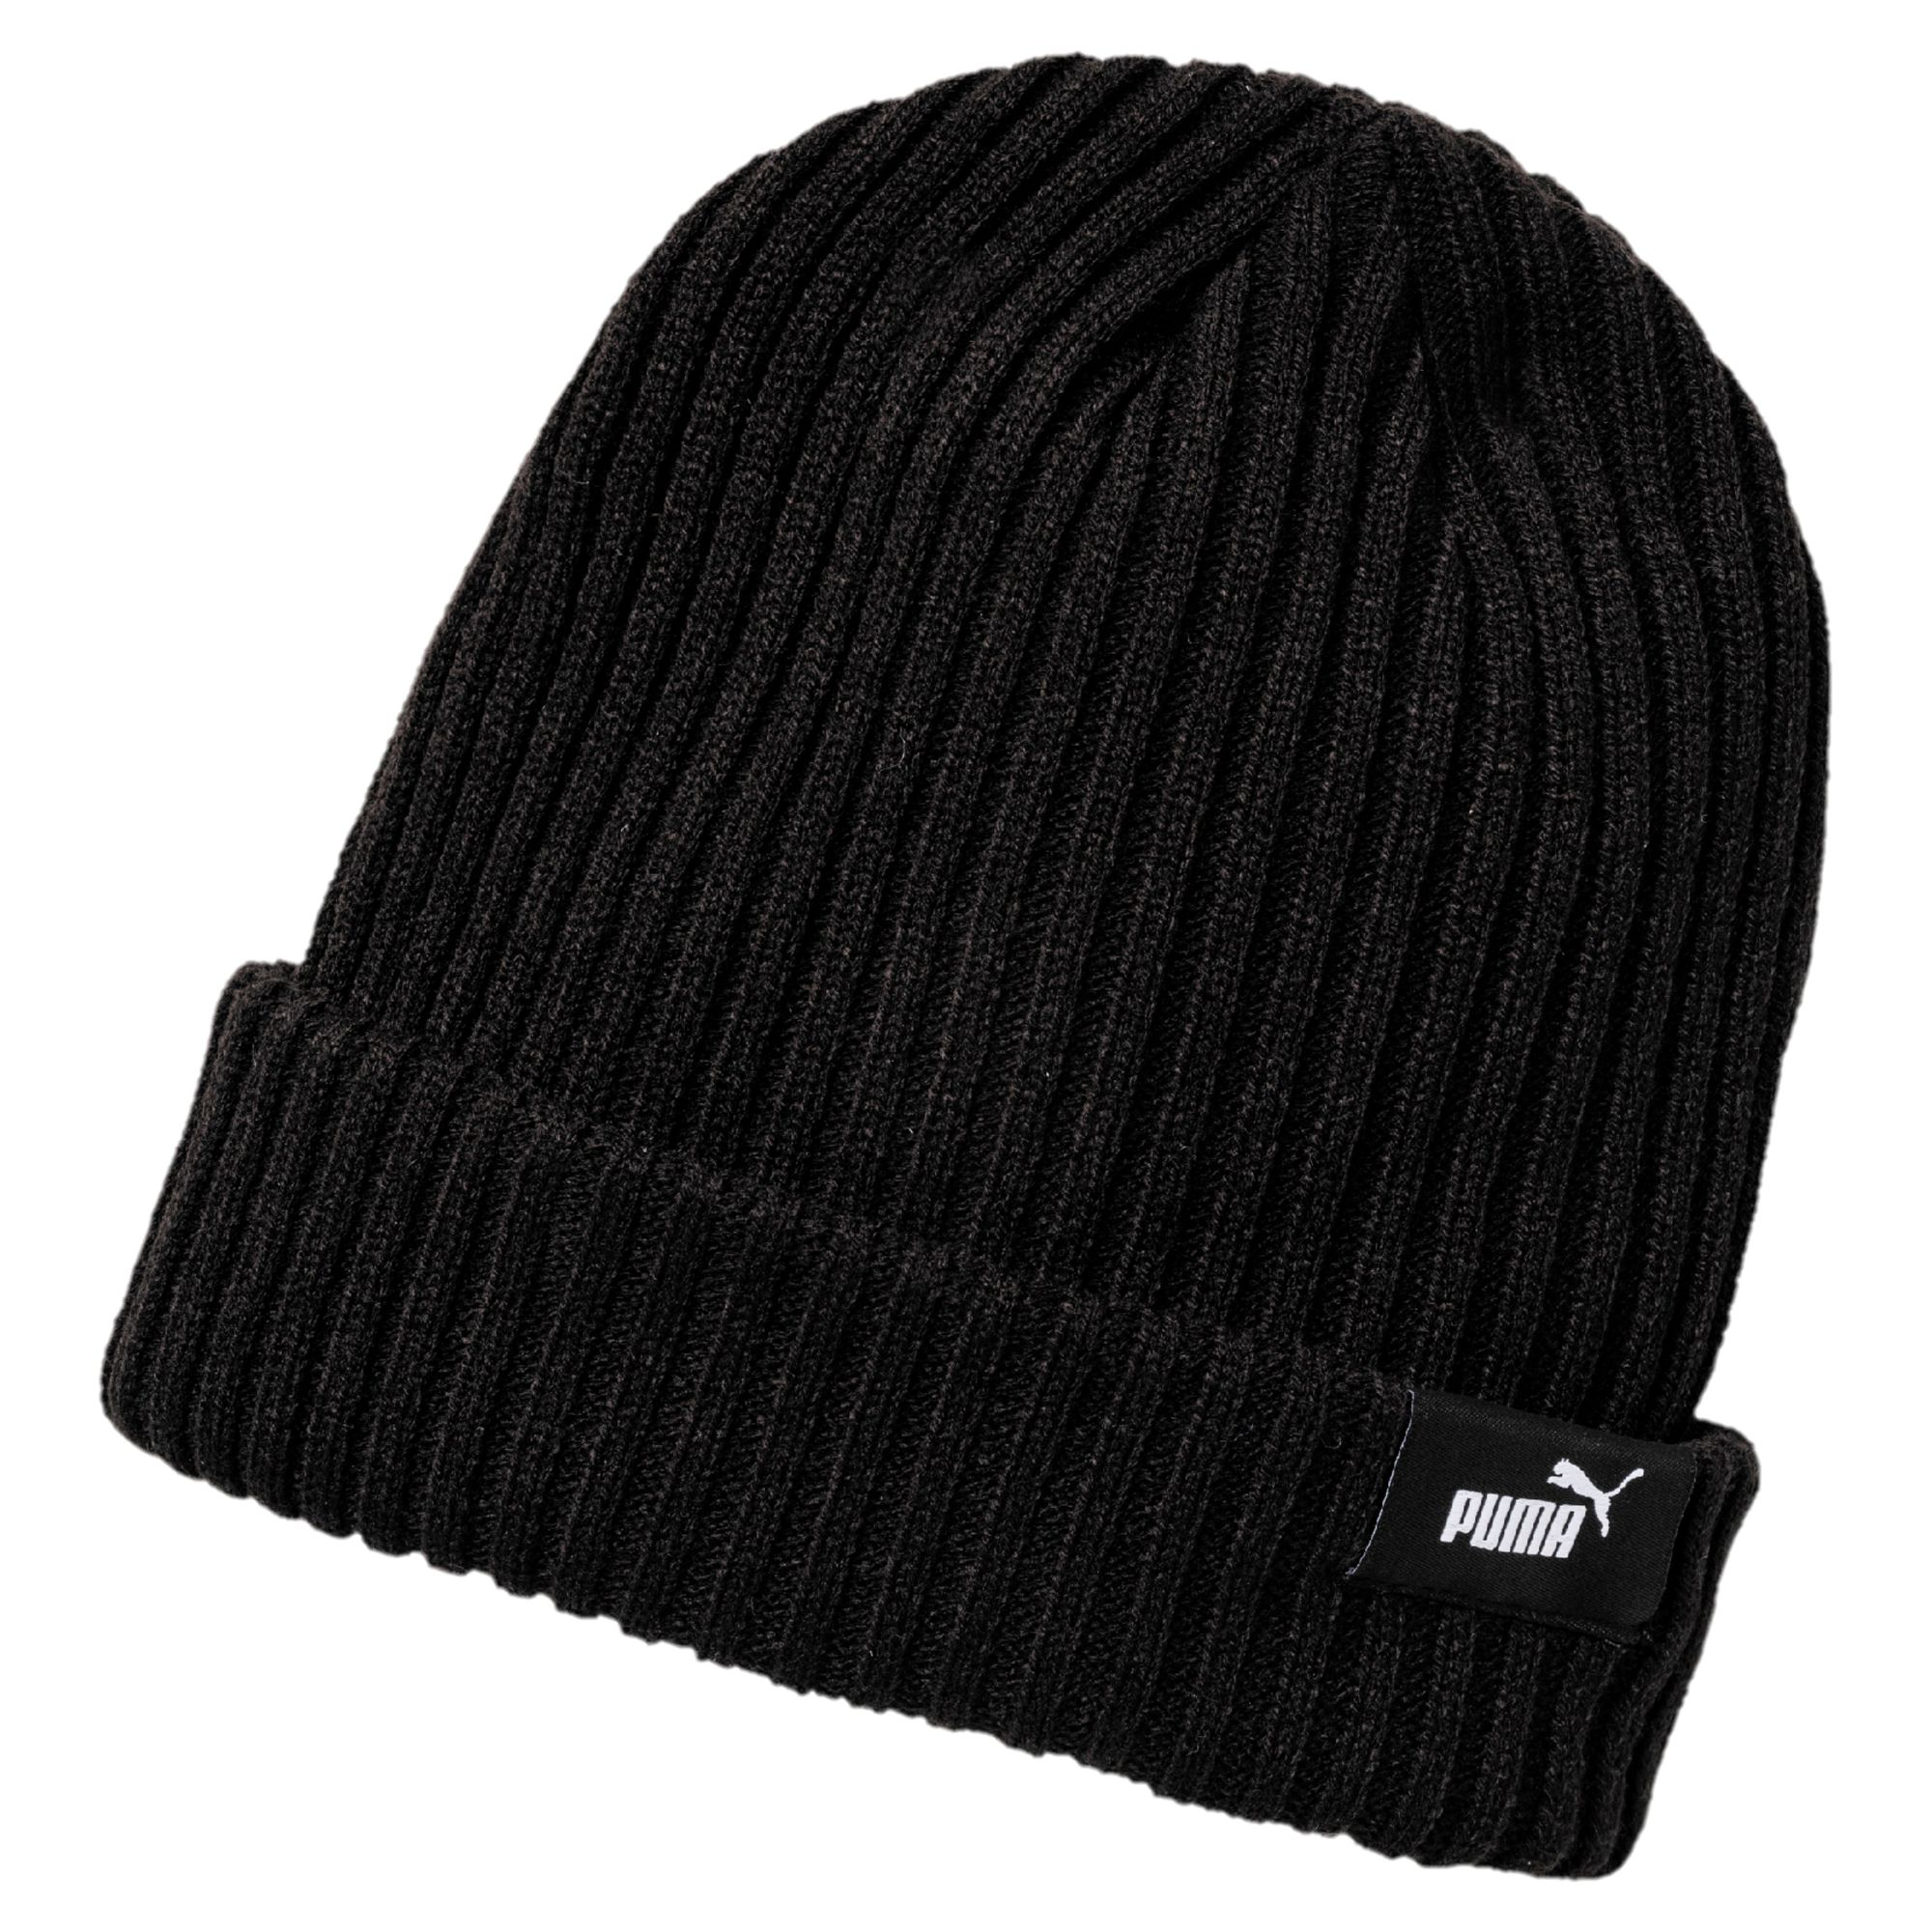 Mid Fit Beanie